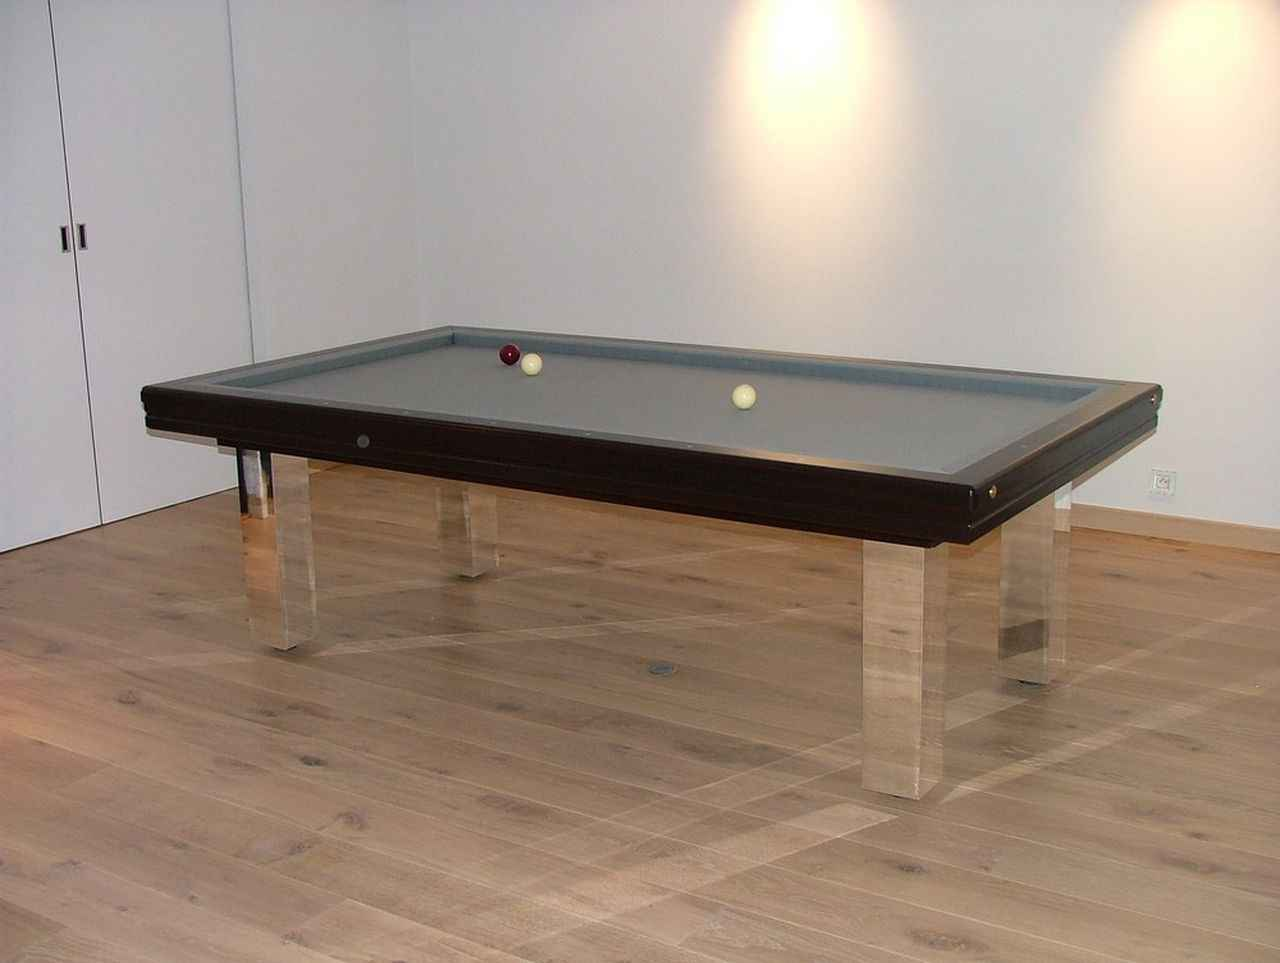 billard toulet miroir dans billard toulet de billard et baby foot sur jouets prestige. Black Bedroom Furniture Sets. Home Design Ideas